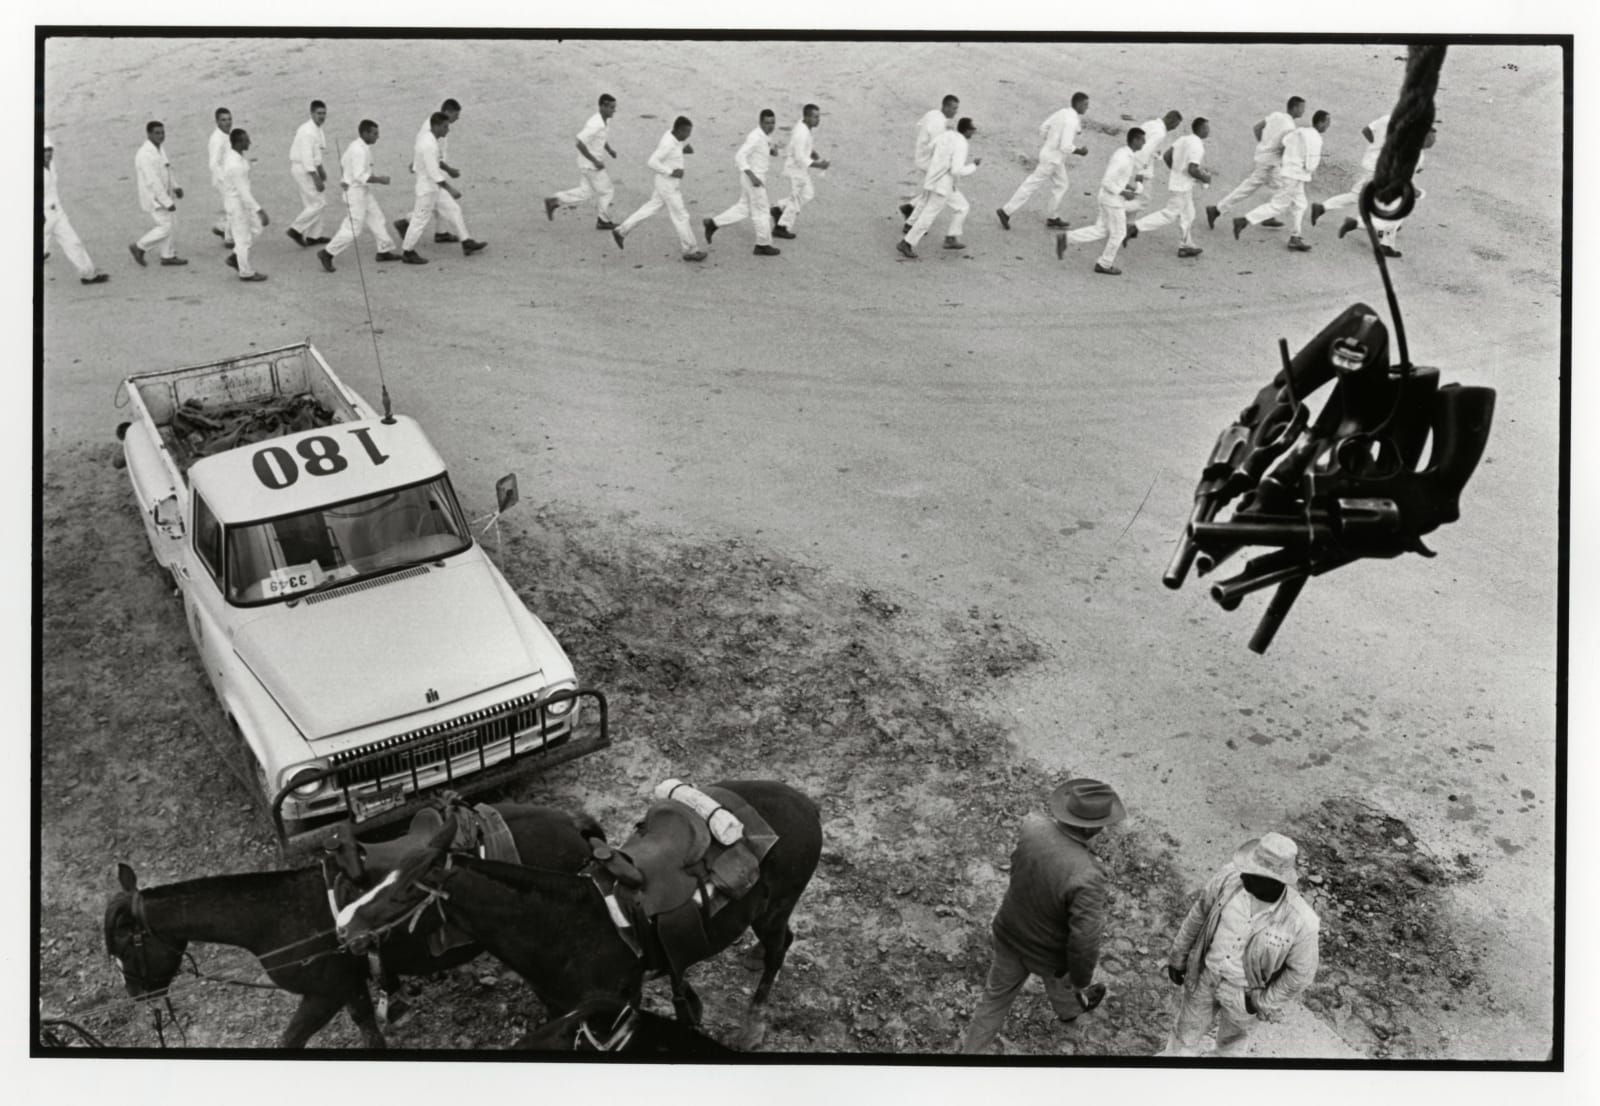 Danny Lyon - Guns Are Passed To The Picket Tower, Ferguson Unit, Texas Department Of Corrections, 1968